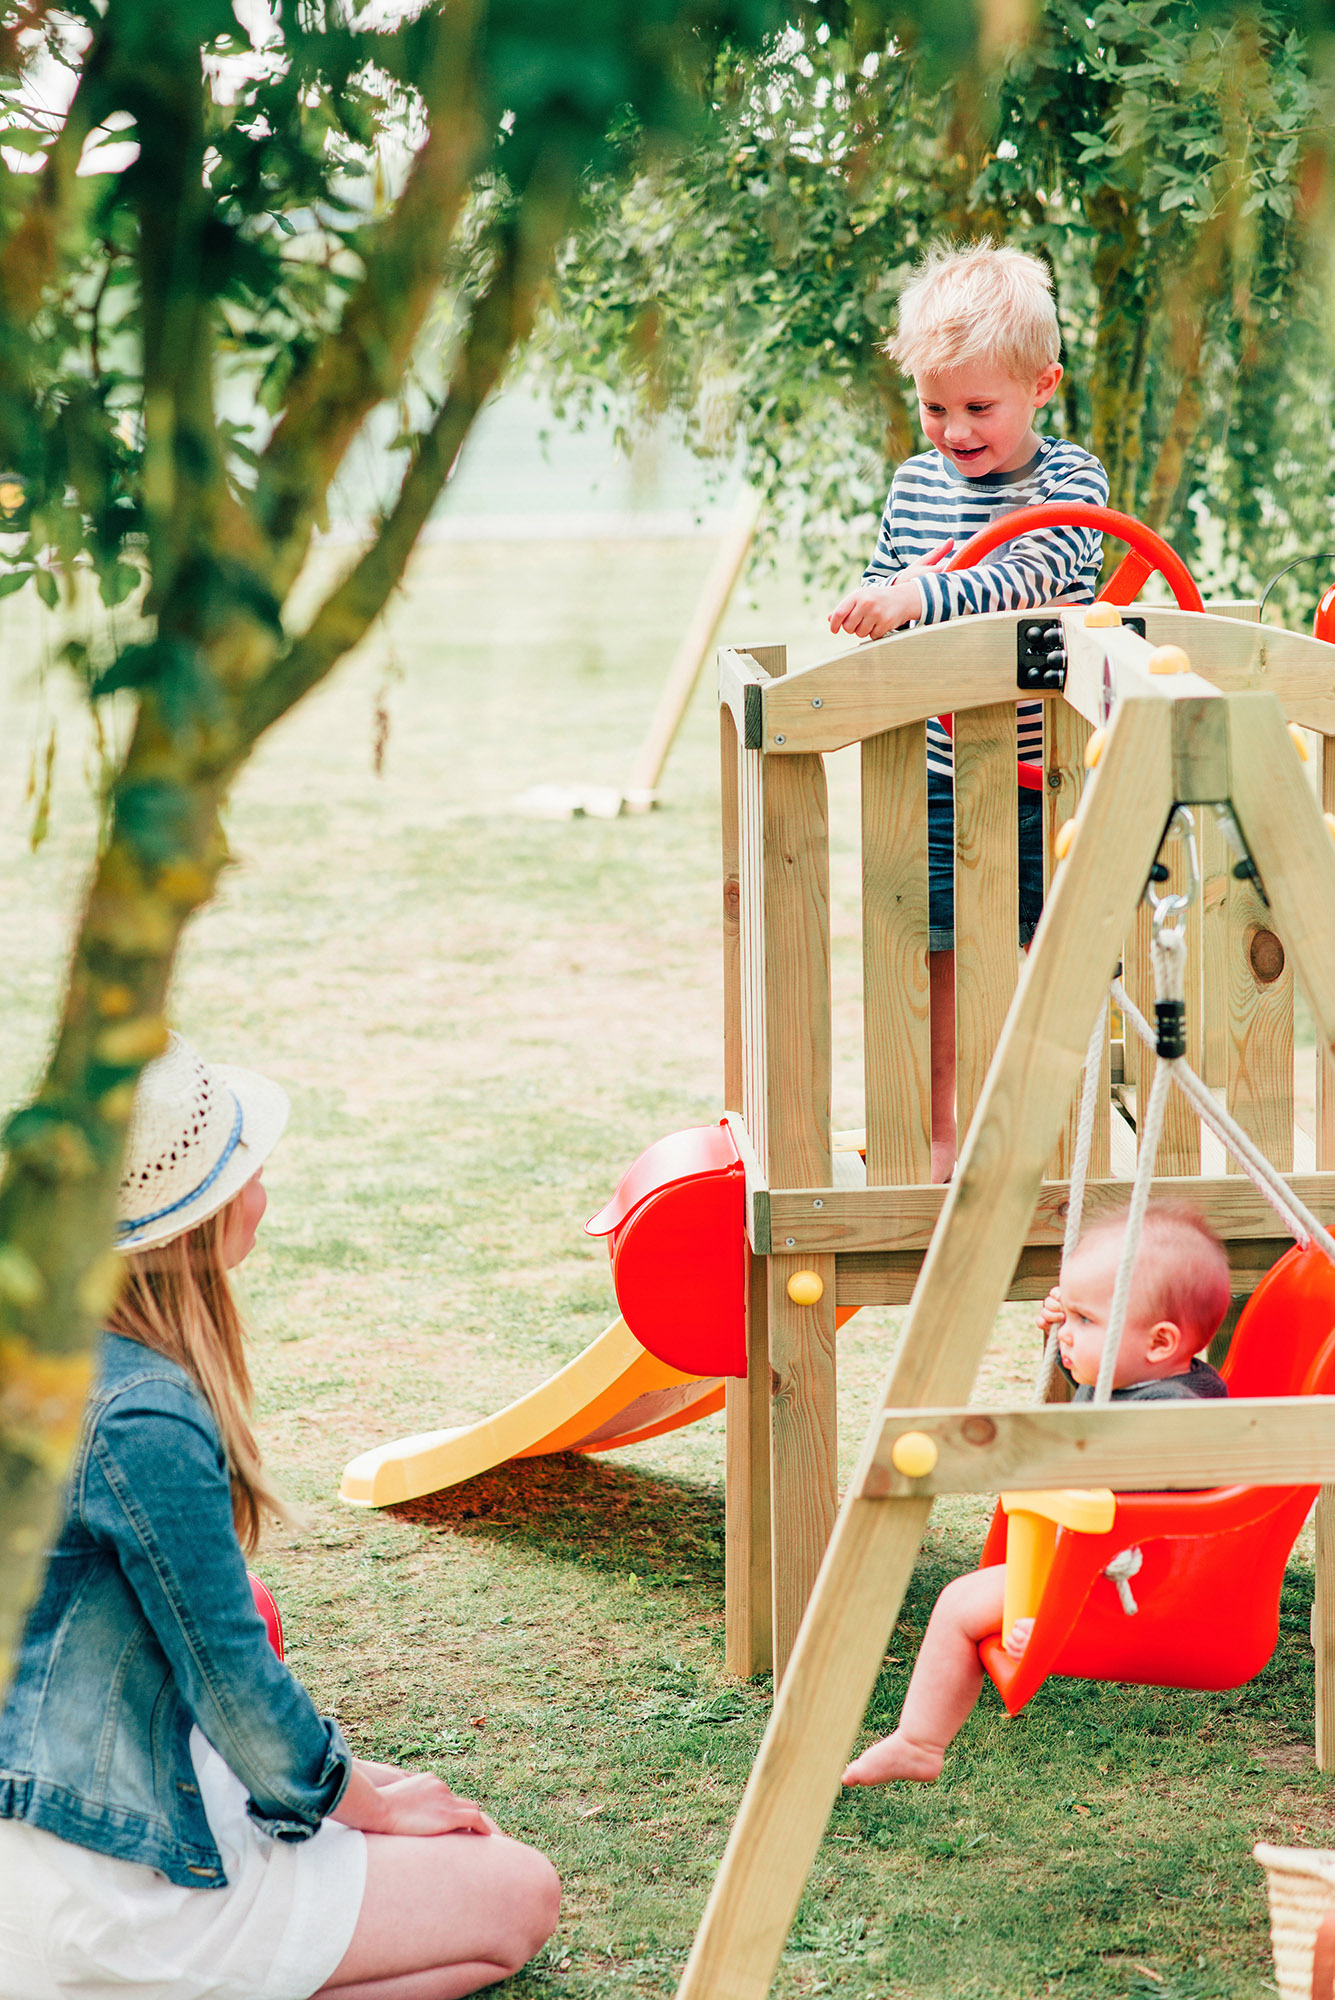 Plum Toddlers Swing Slide Cubby House Playground